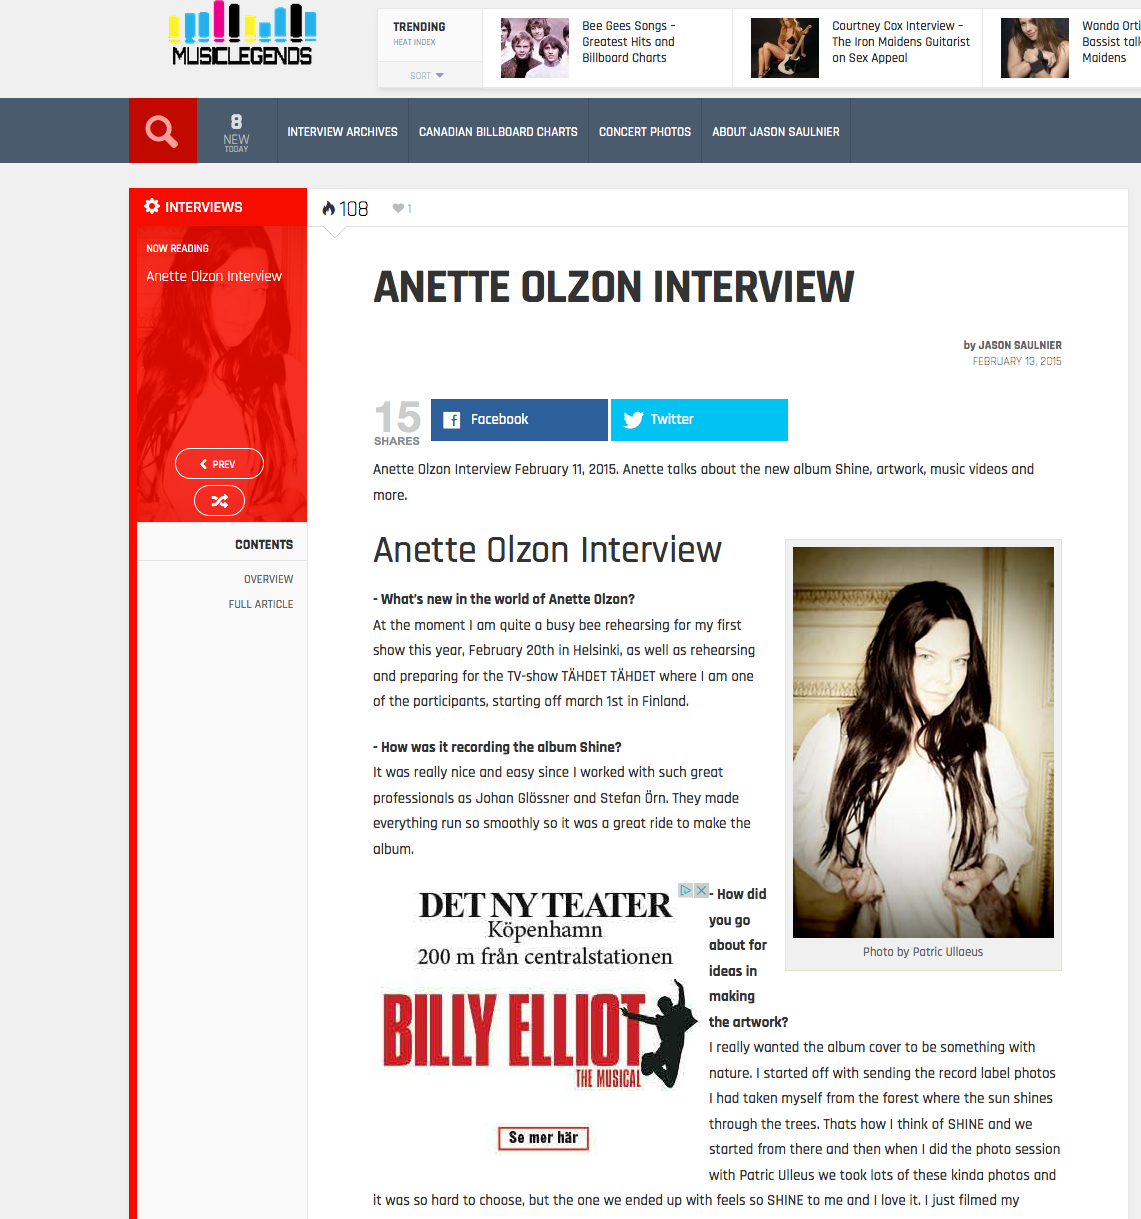 http://musiclegends.ca/interviews/anette-olzon-interview/